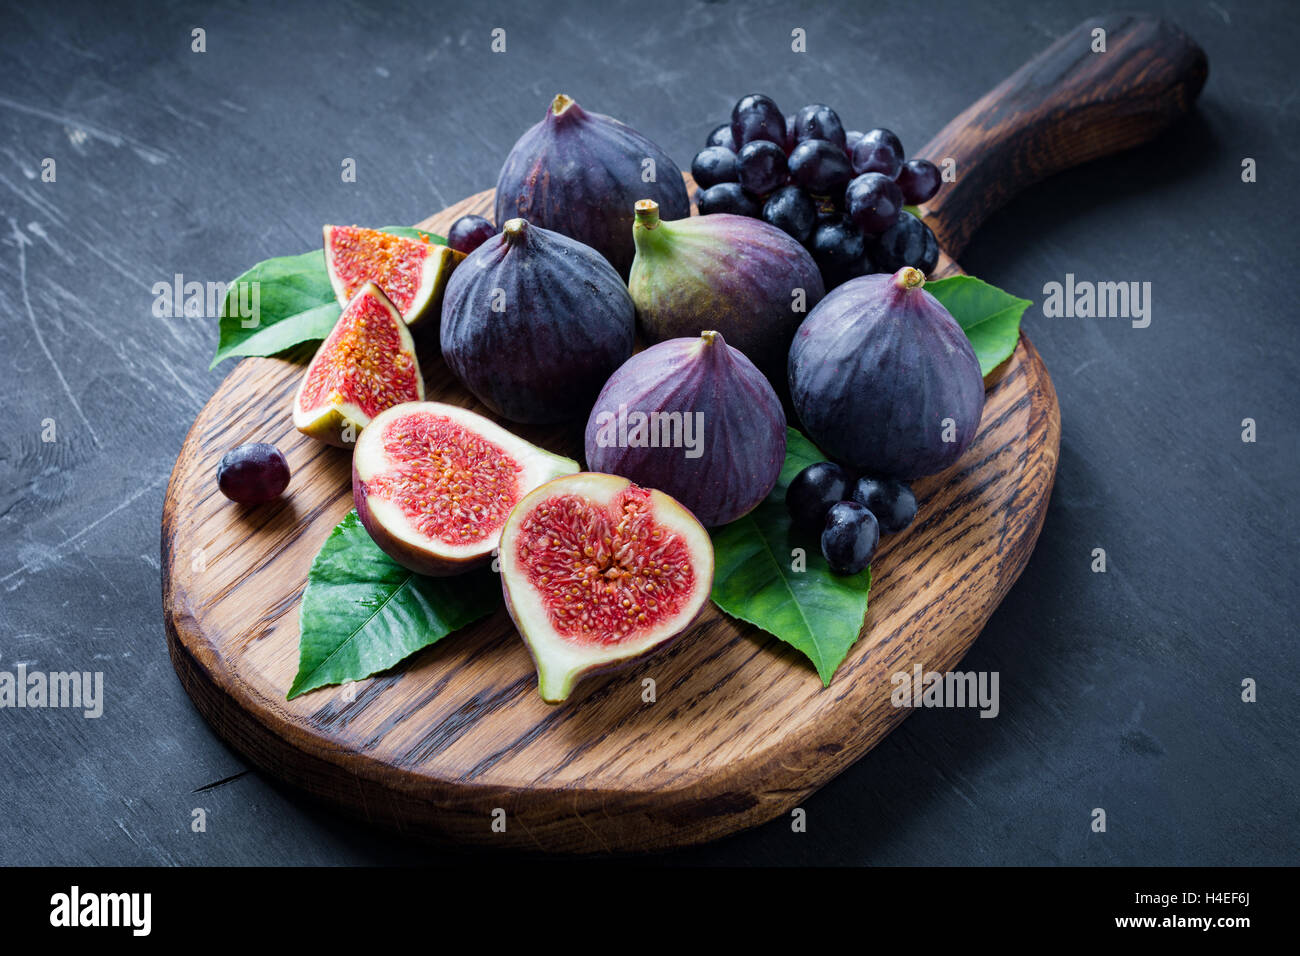 Fruit plate: fresh figs and black grapes 'Isabella' on wooden cutting board. Horizontal - Stock Image